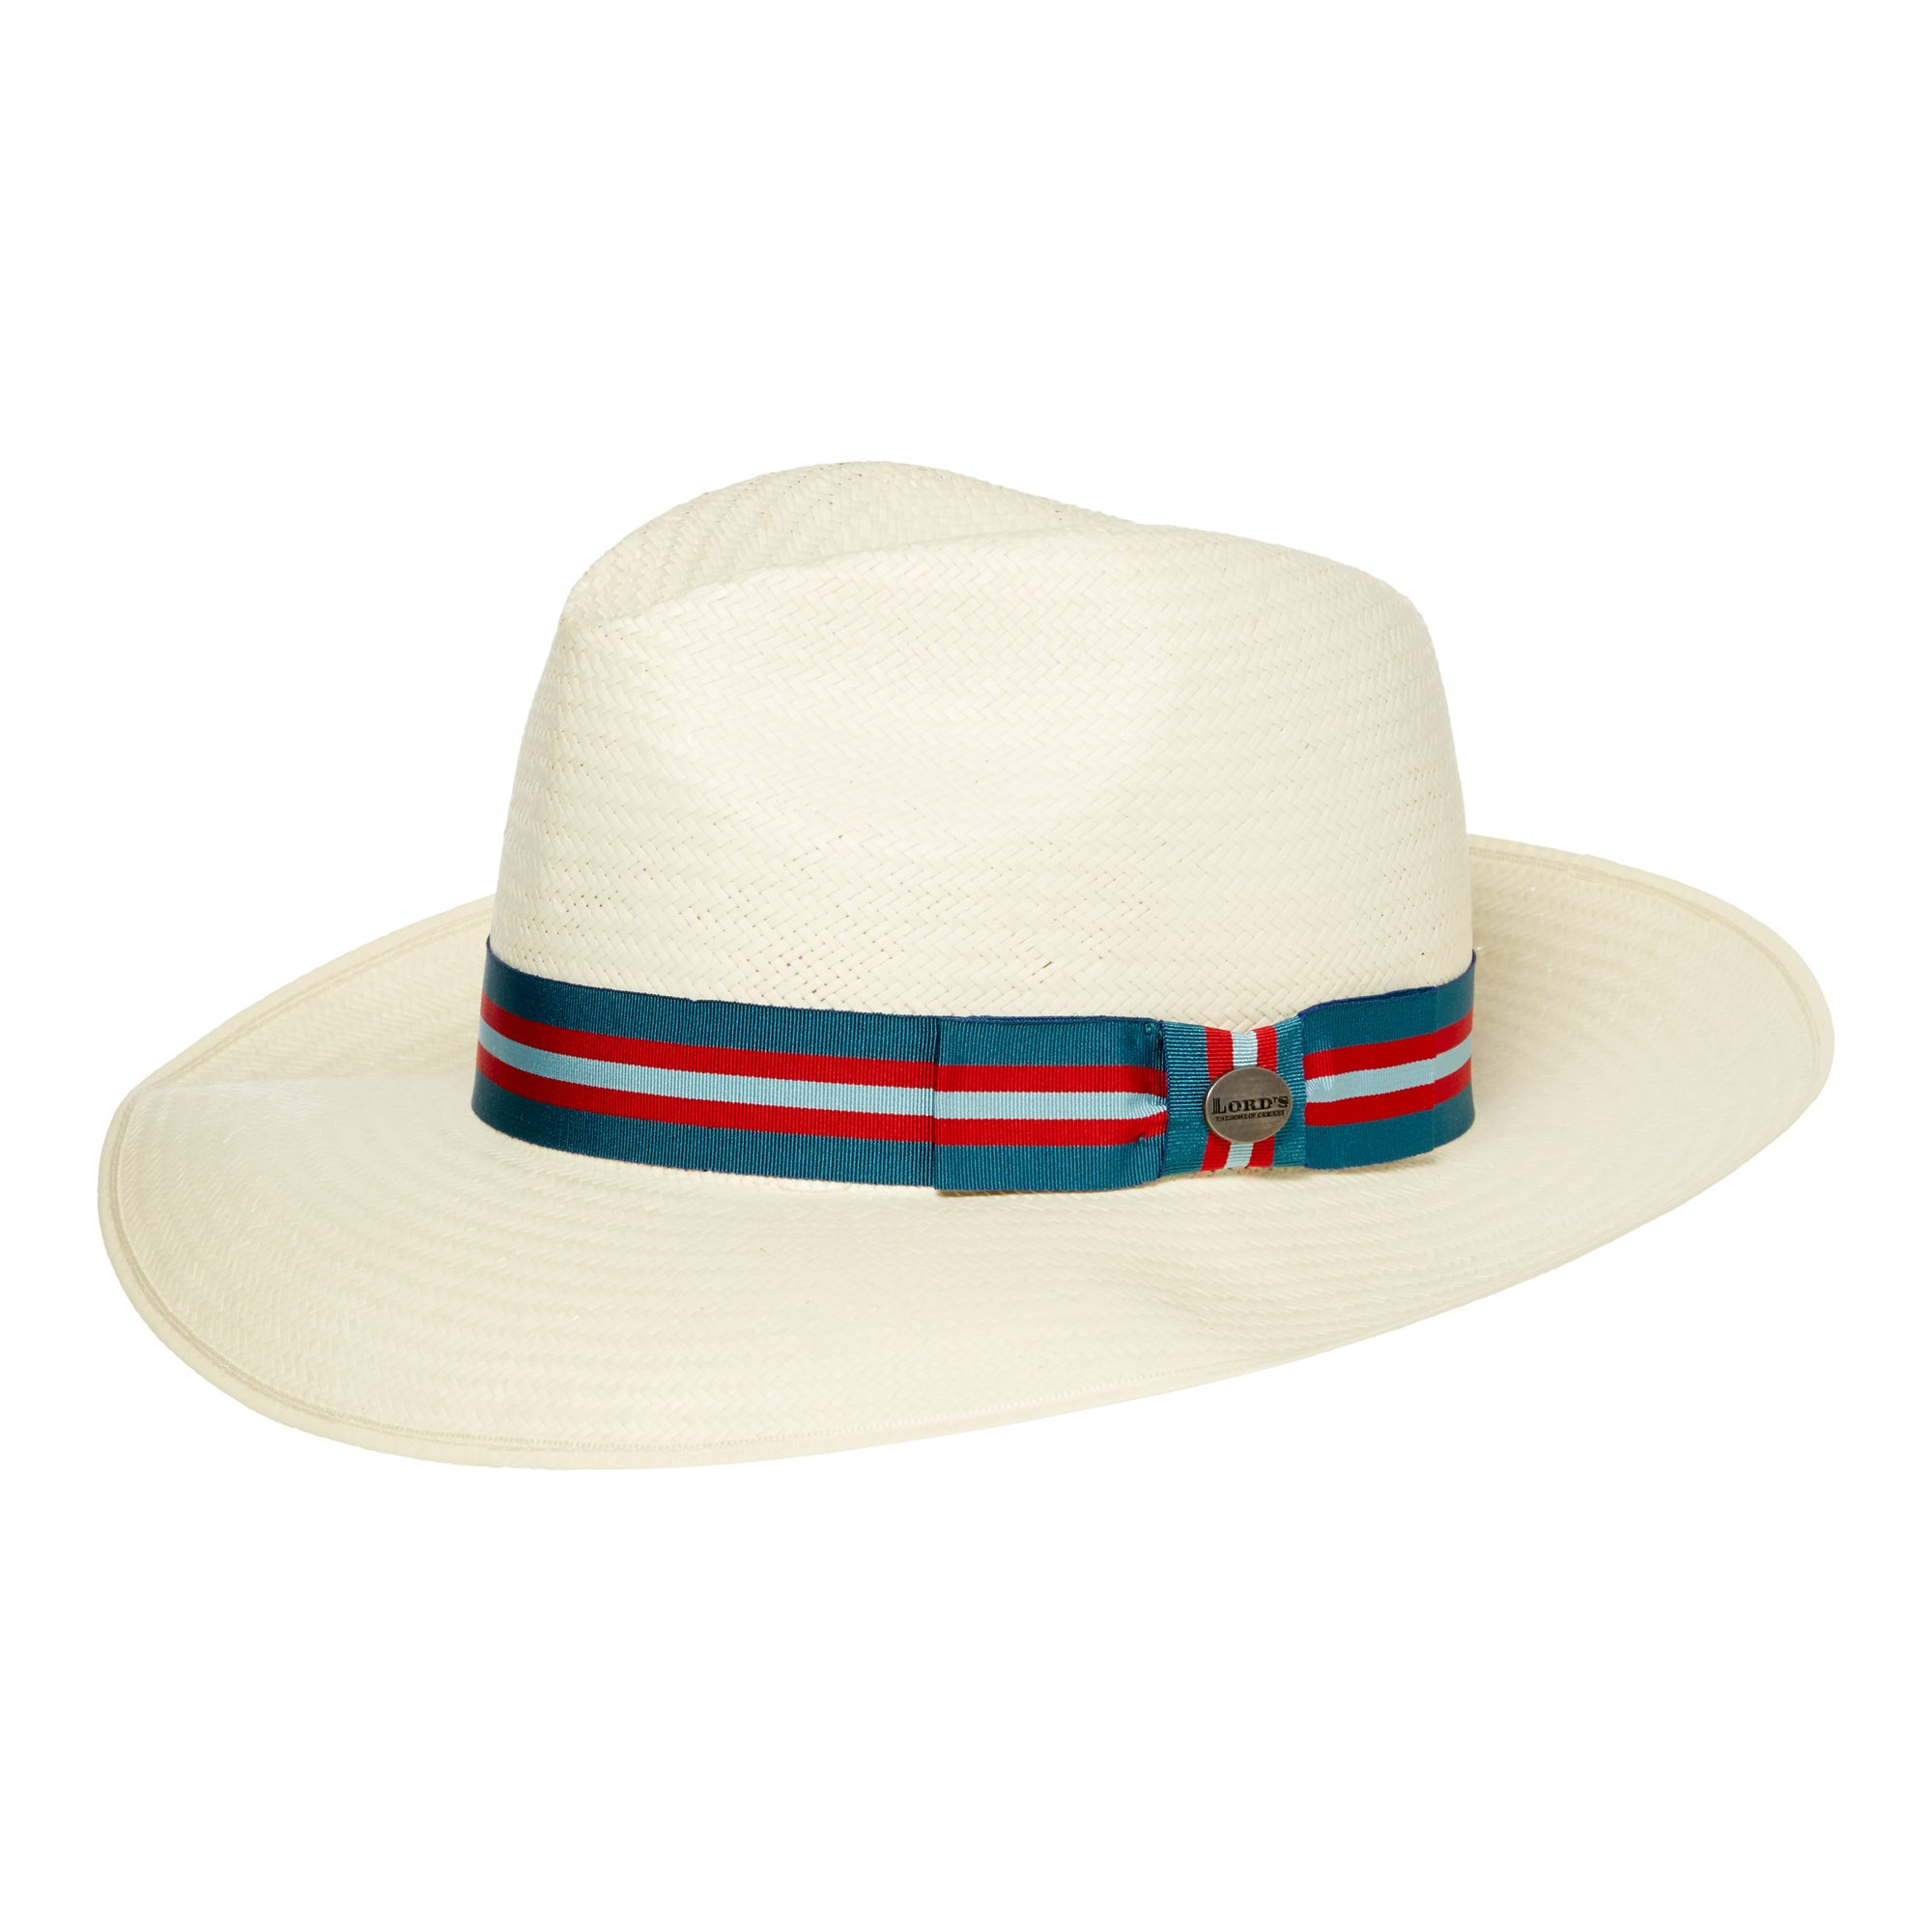 LORD'S PANAMA-STYLE PAPER SUN HAT